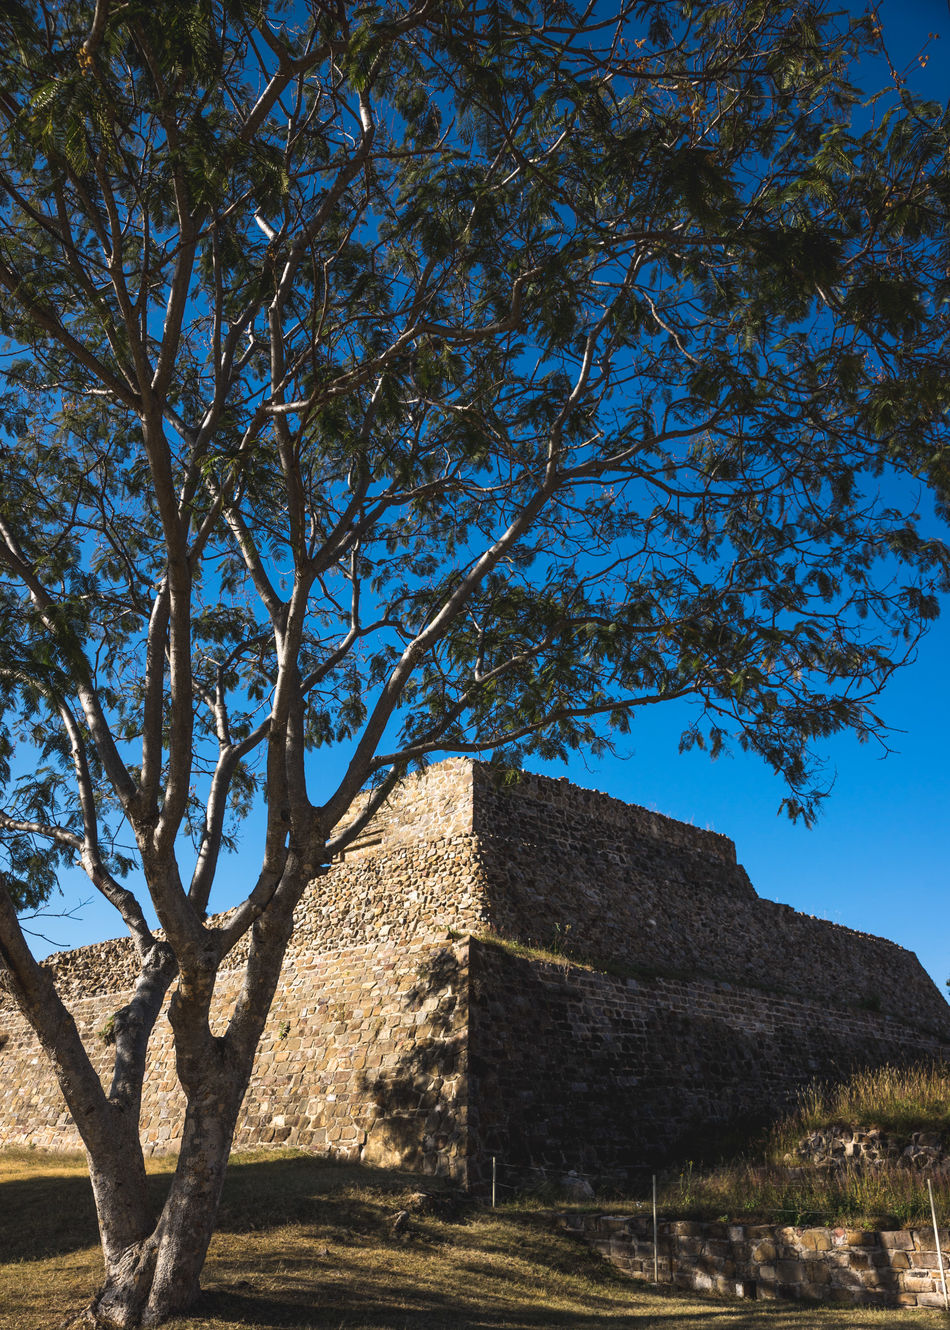 Ancient Ancient Architecture Ancient Civilization Ancient Ruins Archeology Architecture Architecture Art Blue Cosmos Culture Day History Landscape_photography Mexico Mexico_maravilloso Monte Alban Nature Nature No People Outdoors Prehispanic Pyramid Sky Tree